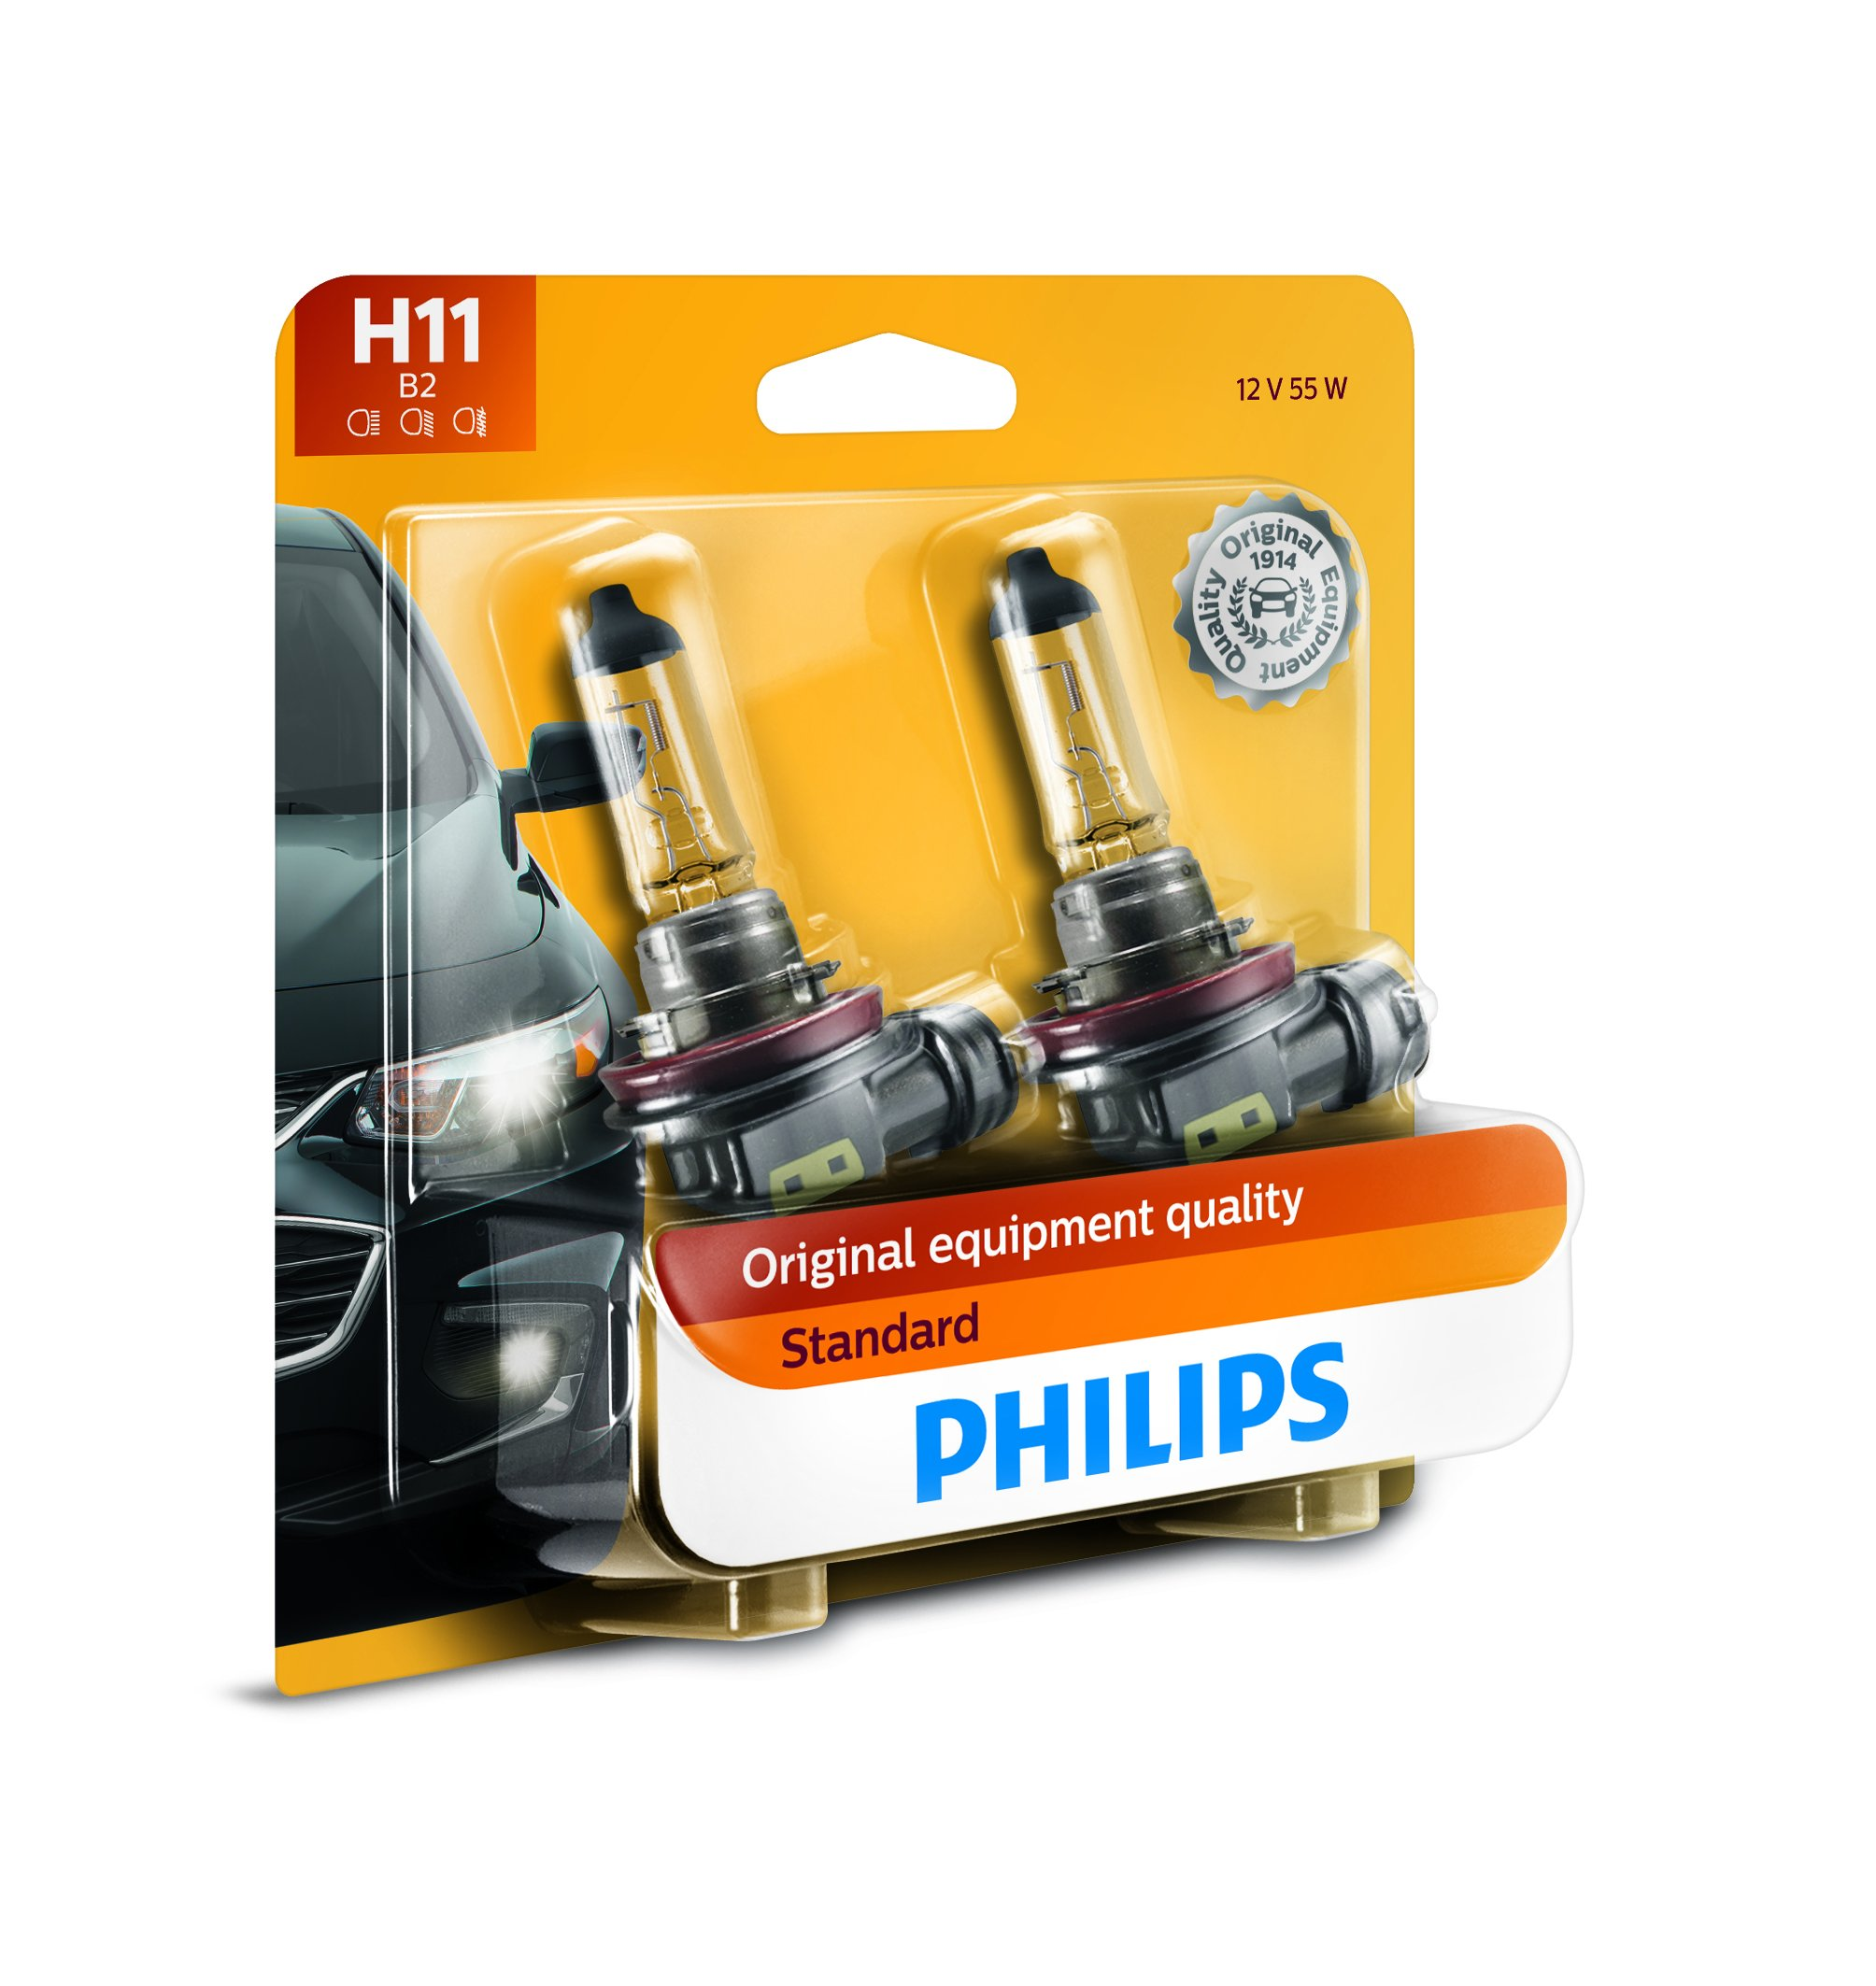 Philips H11 Standard Halogen Replacement Headlight Bulb, 2 Pack product image